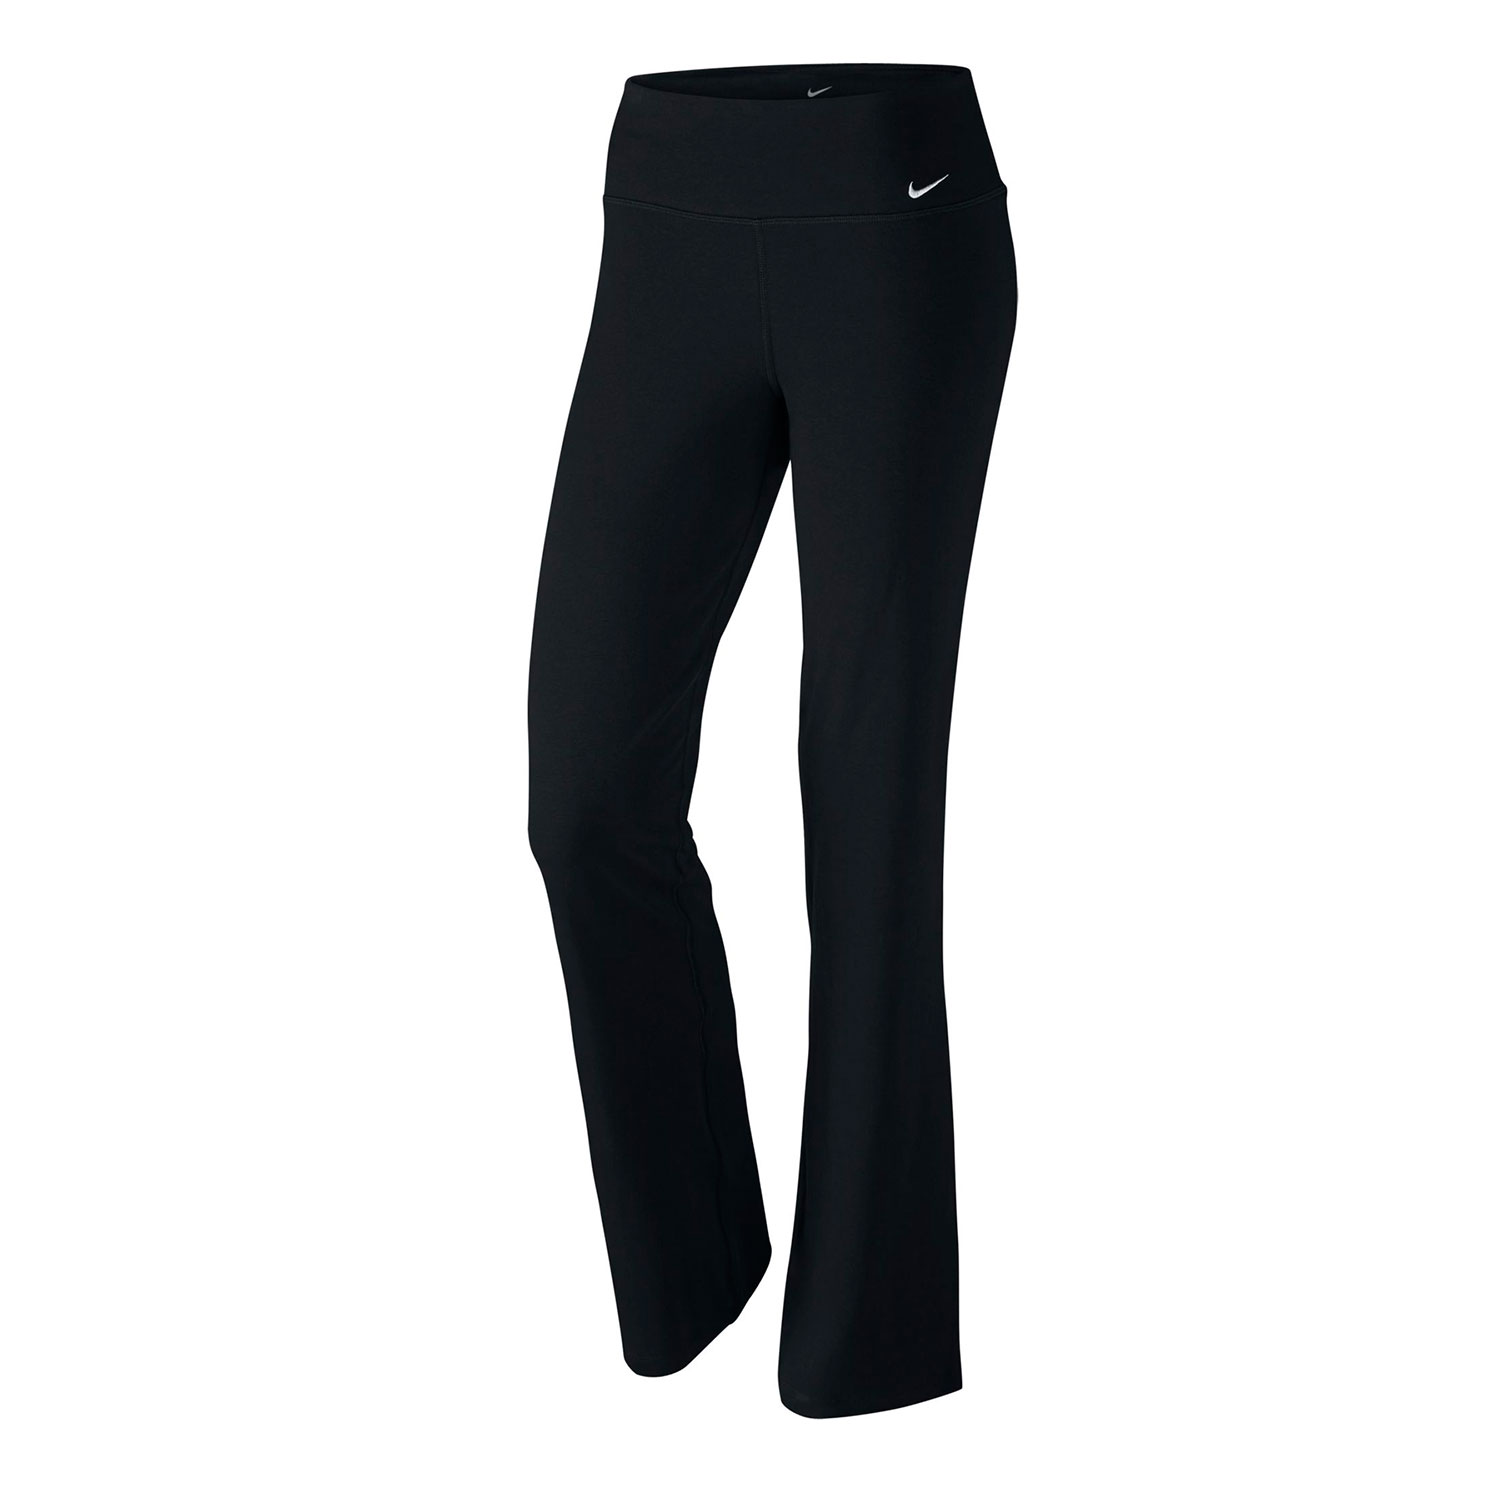 Popular $2699 This Item Is Selling For $2699 On EBay Womens Nike DriFit Athletic Workout Pants Size S Zippered Ankles One Back Pocket With Zipper Closure Measurements Across Waist 125, Inseam 32, Total Length 40&quot Item Is In